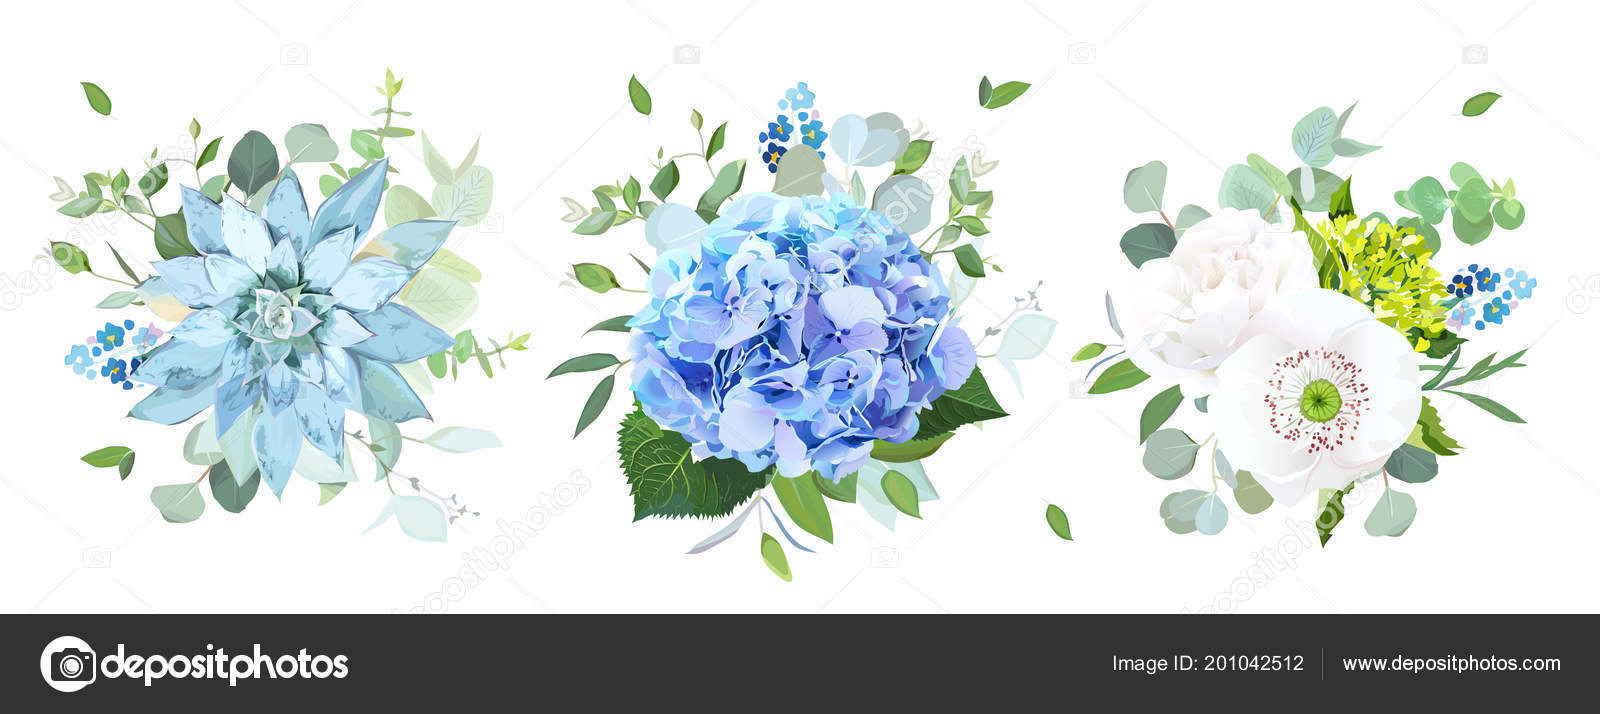 Blue and white flowers vector design bouquets stock vector blue and white flowers vector design bouquets stock vector izmirmasajfo